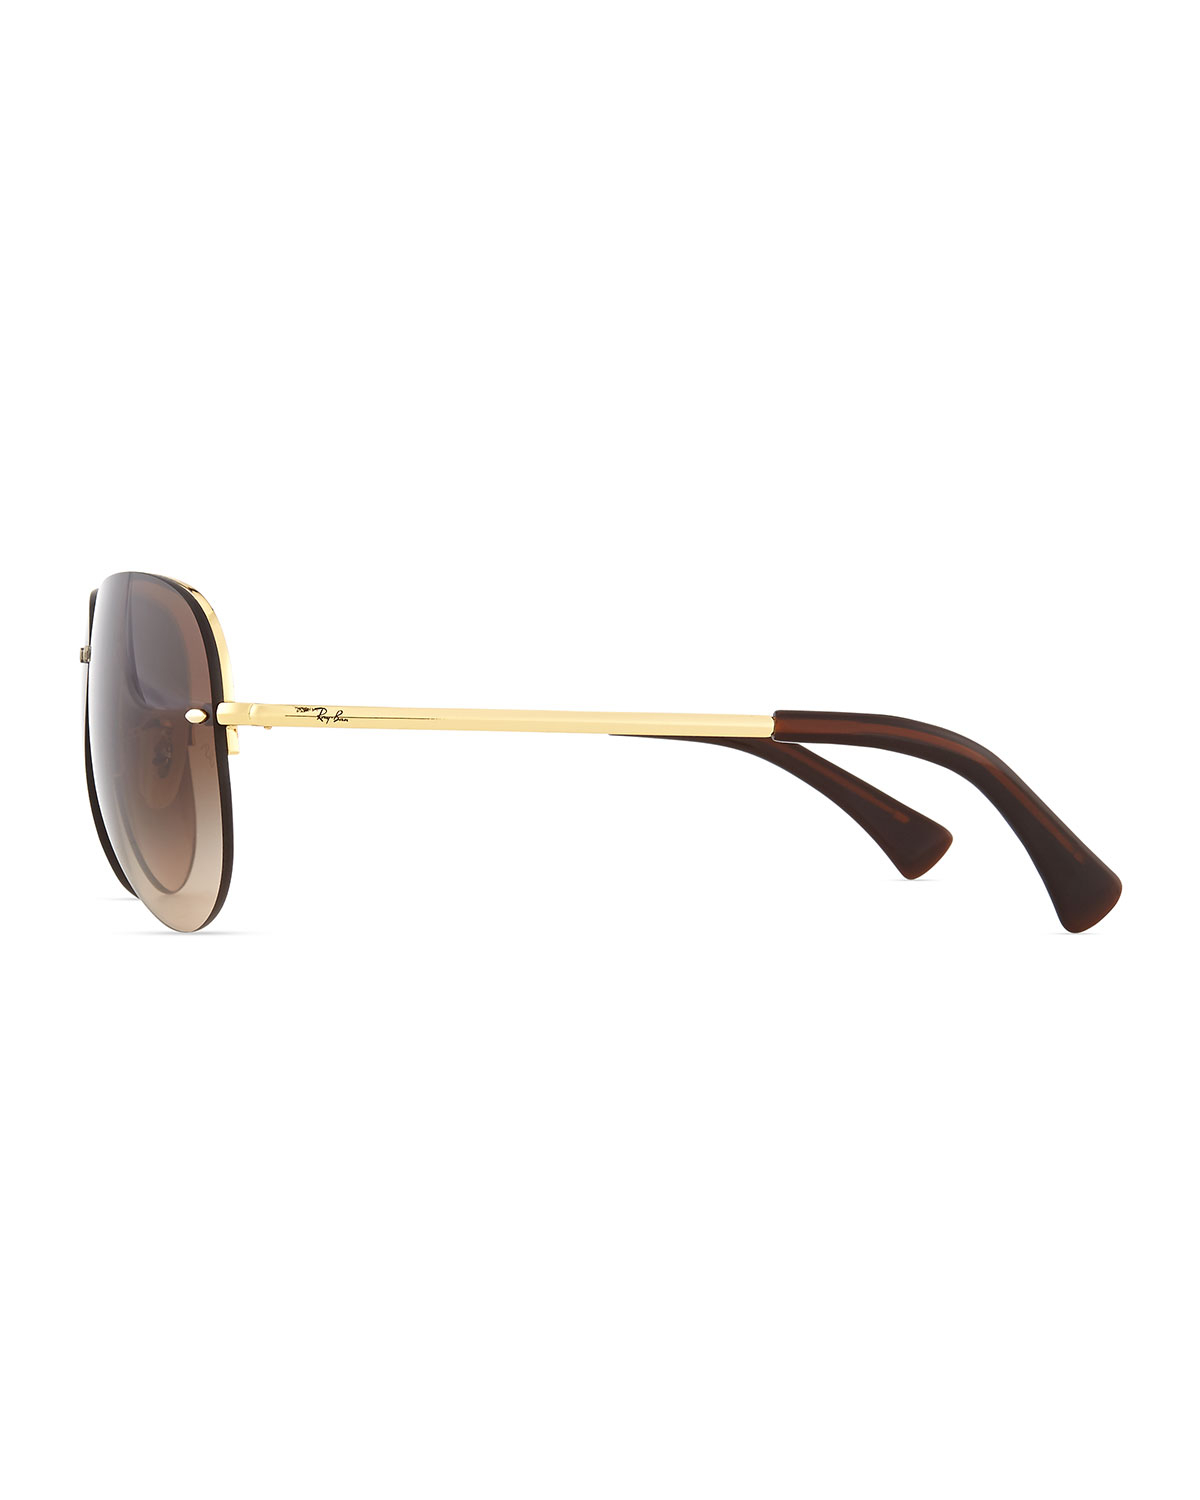 Rimless Aviator Eyeglass Frames : Ray-ban Semi-rimless Aviator Sunglasses in Metallic for ...